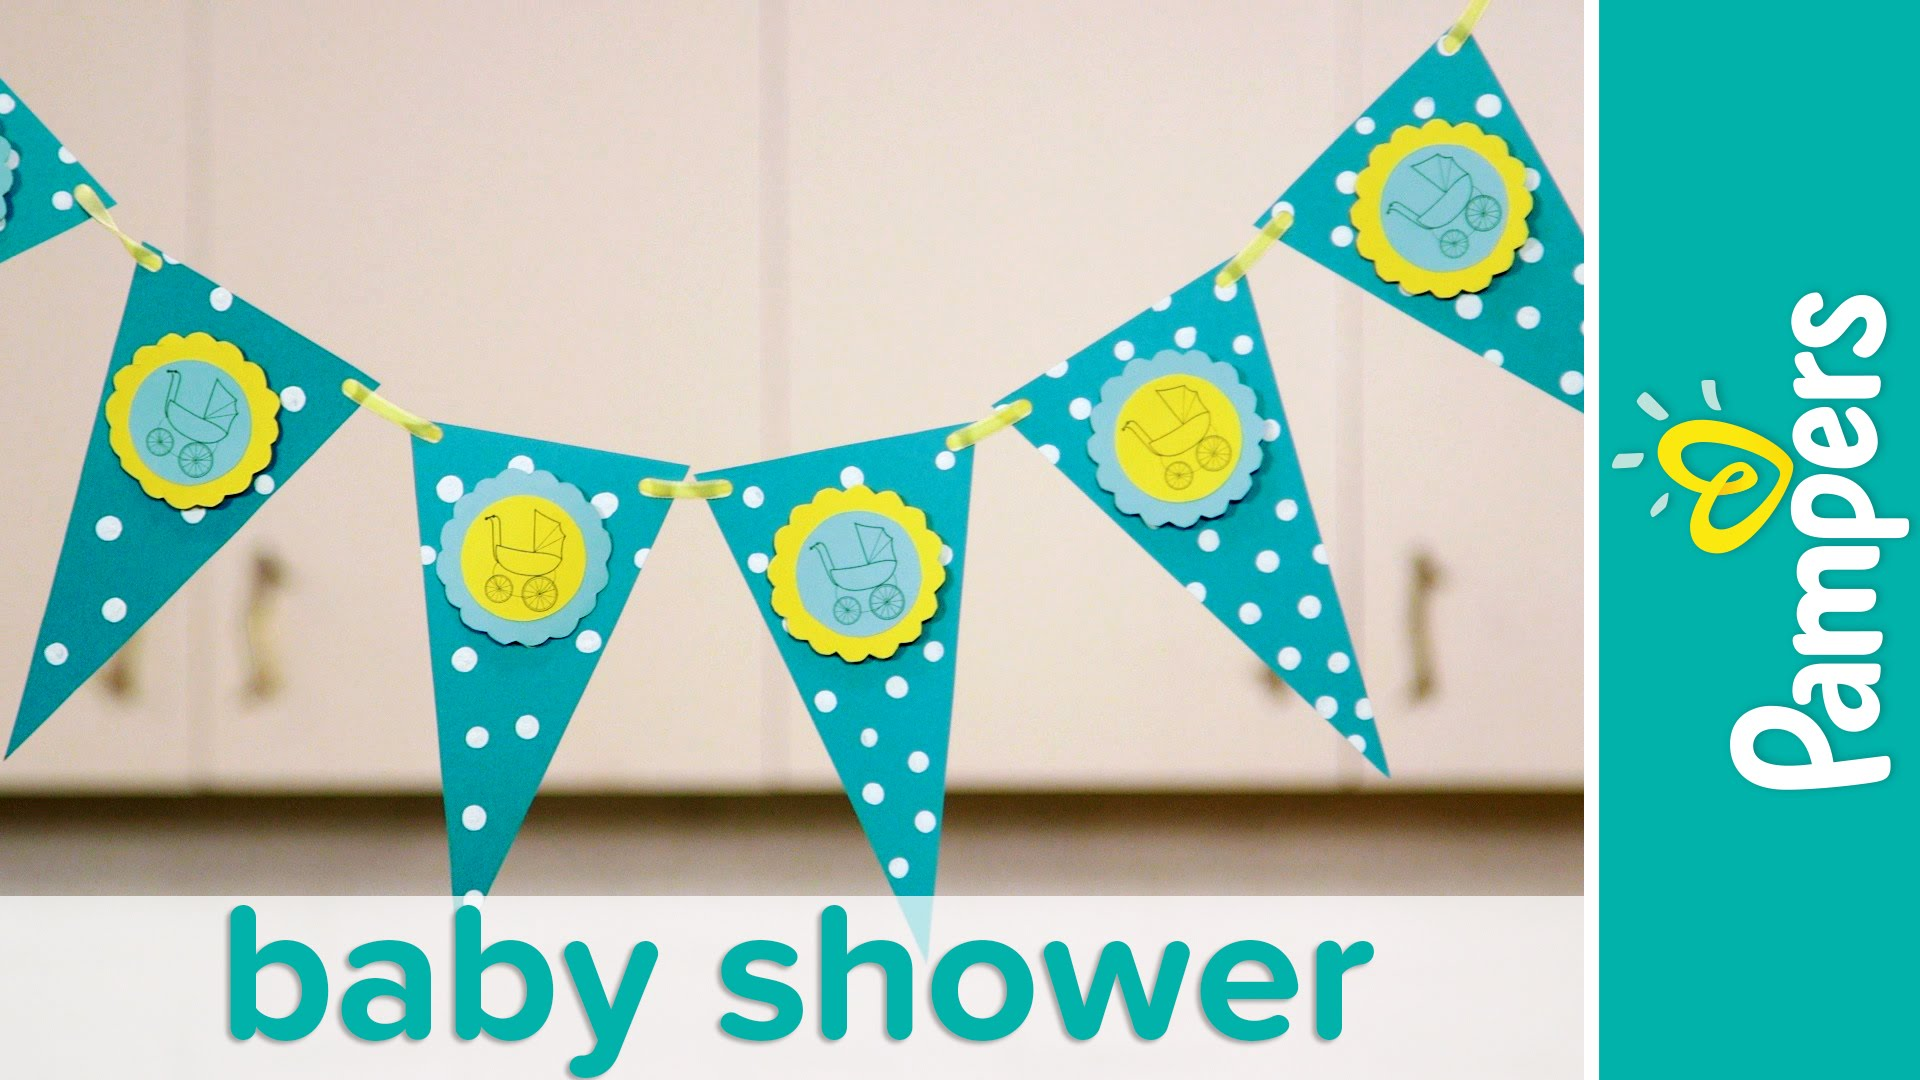 Full Size of Baby Shower:89+ Indulging Baby Shower Banner Picture Inspirations Baby Shower Dessert Table Baby Shower Desserts Best Shows For Babies Cosas De Baby Shower Baby Shower Hashtag Ideas